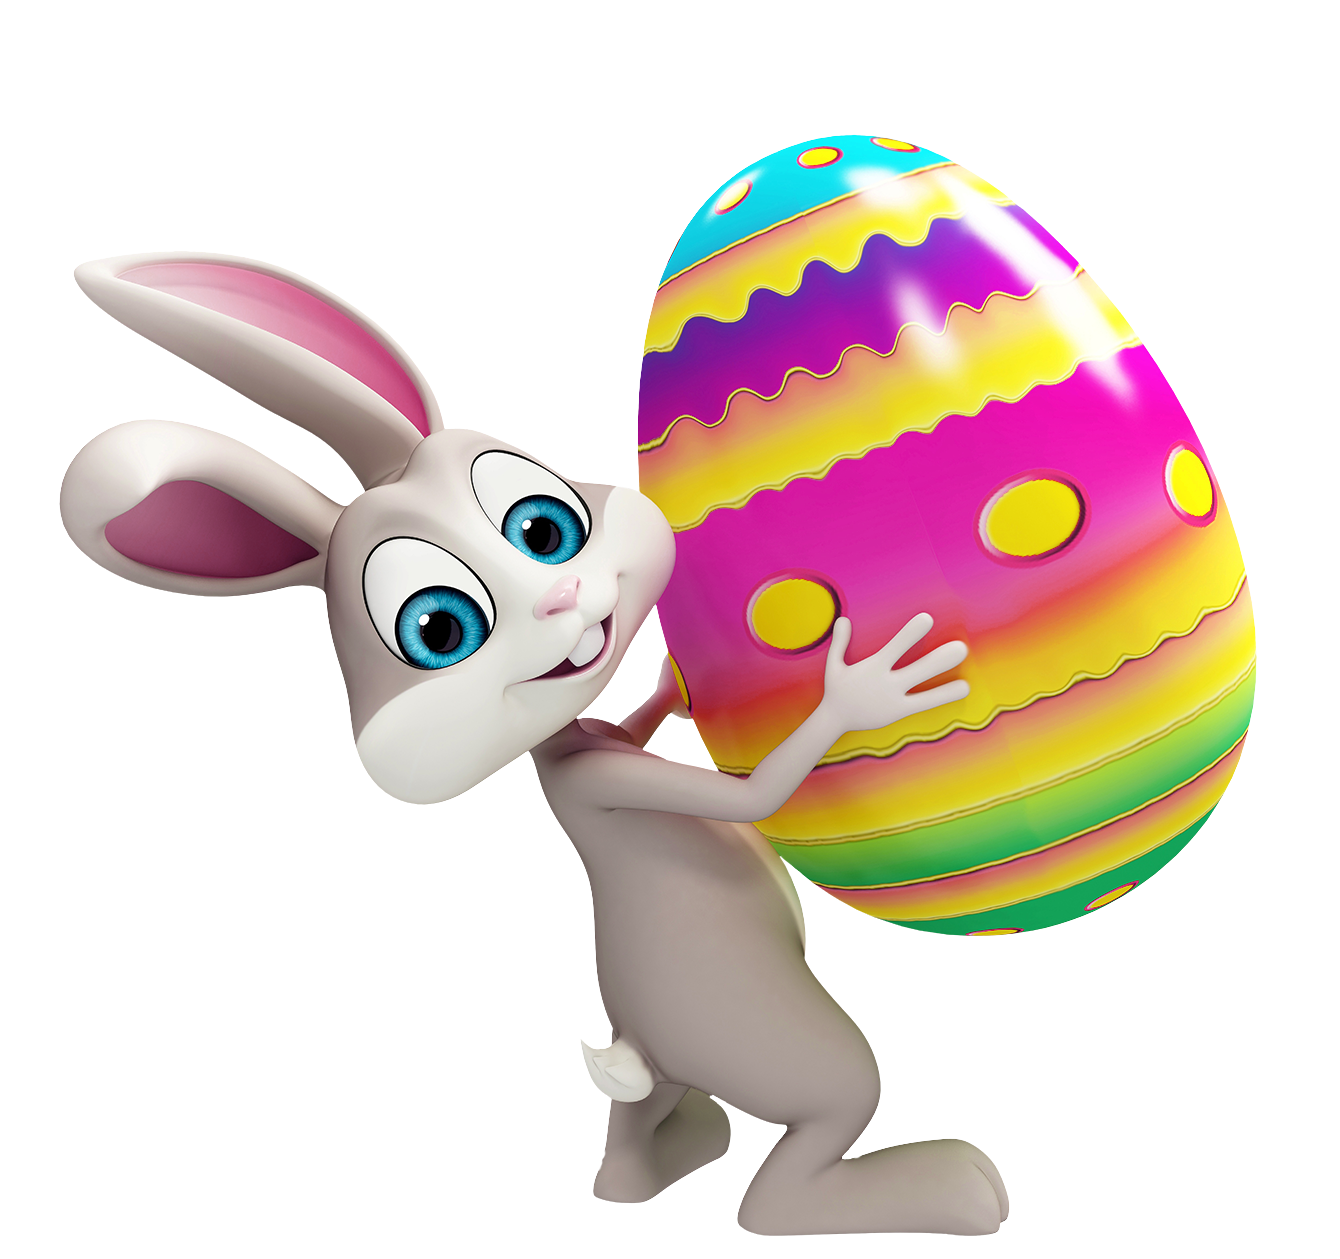 Easter Bunny with Colorful Egg Transparent PNG Clipart